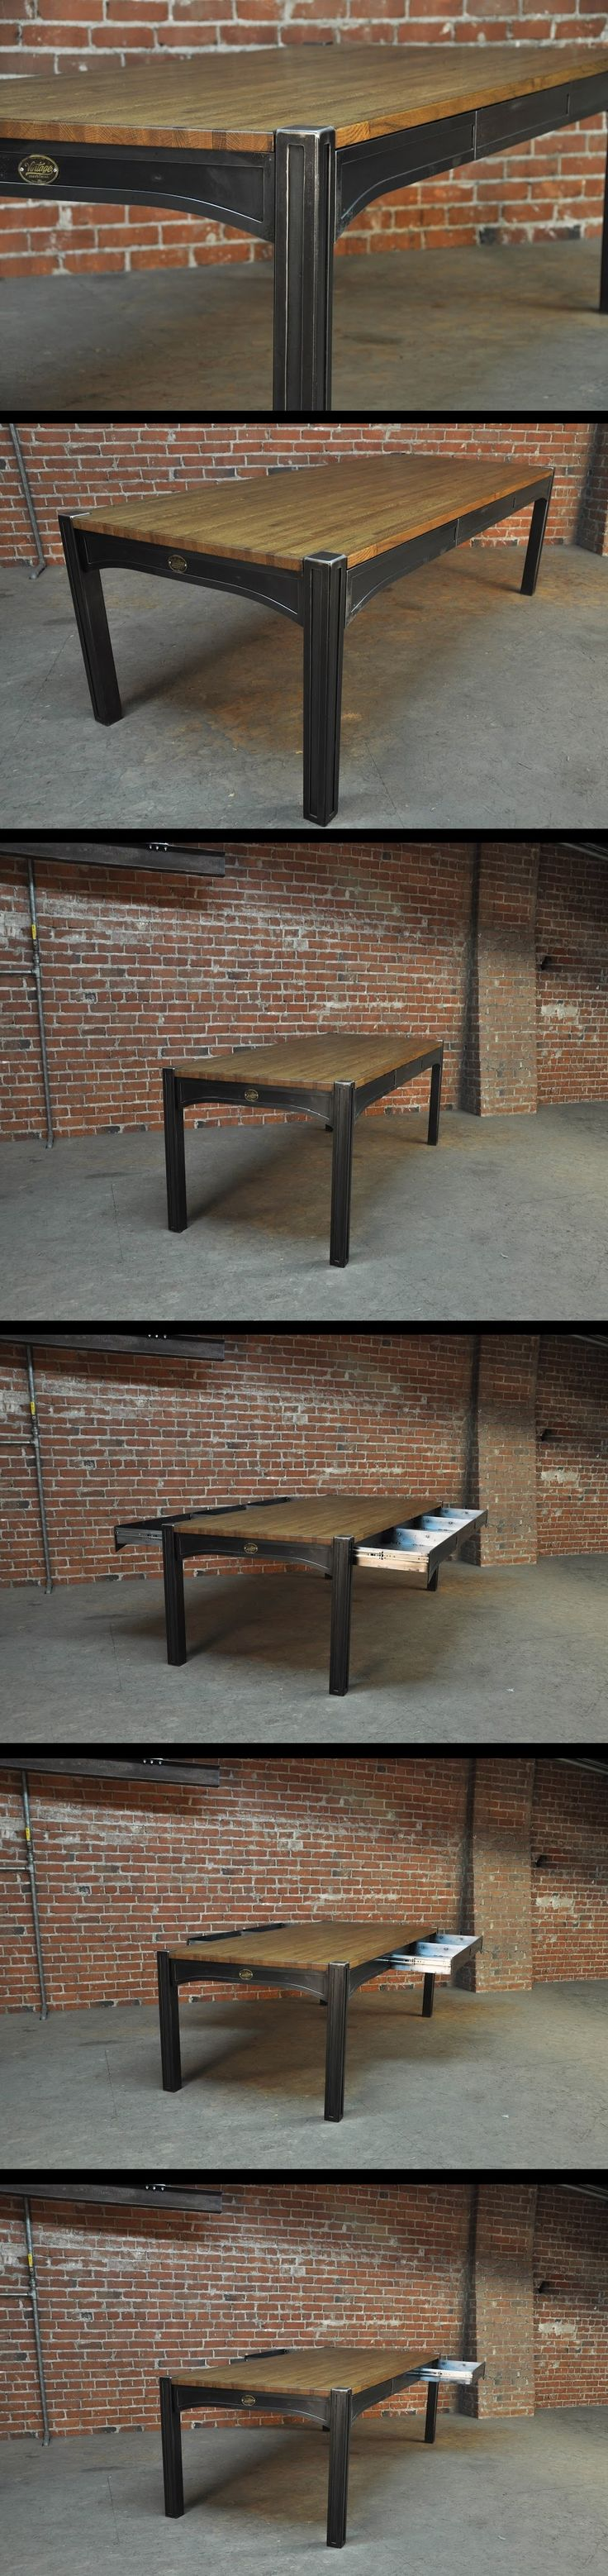 42 Dining Table by Vintage Industrial in Phoenix, AZ